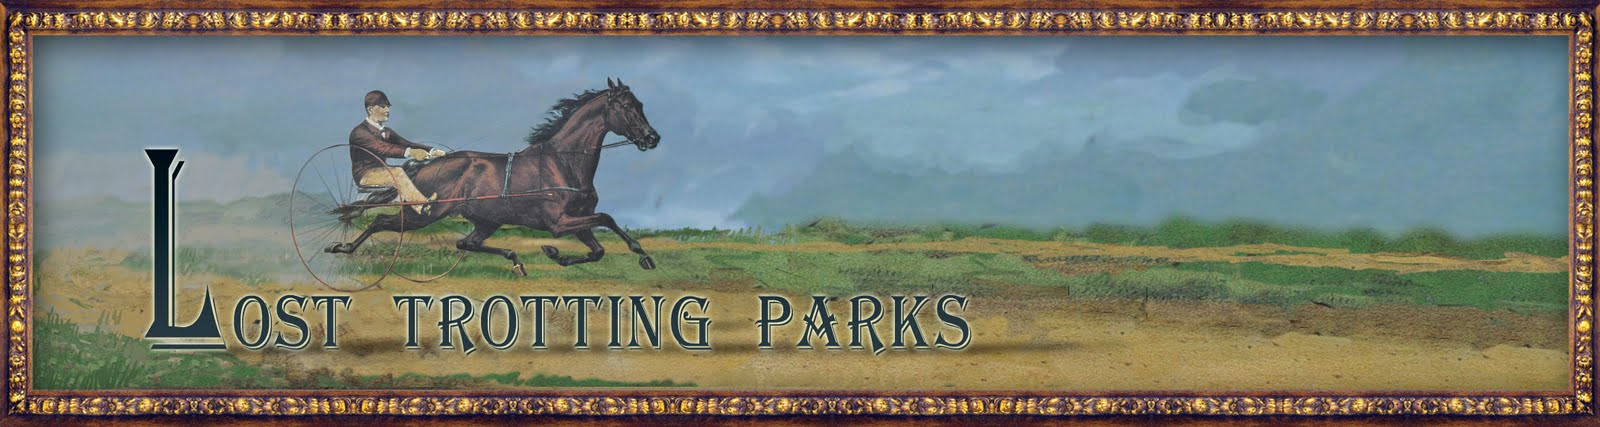 The Lost Trotting Parks Heritage Center  -- Storyboard Archives